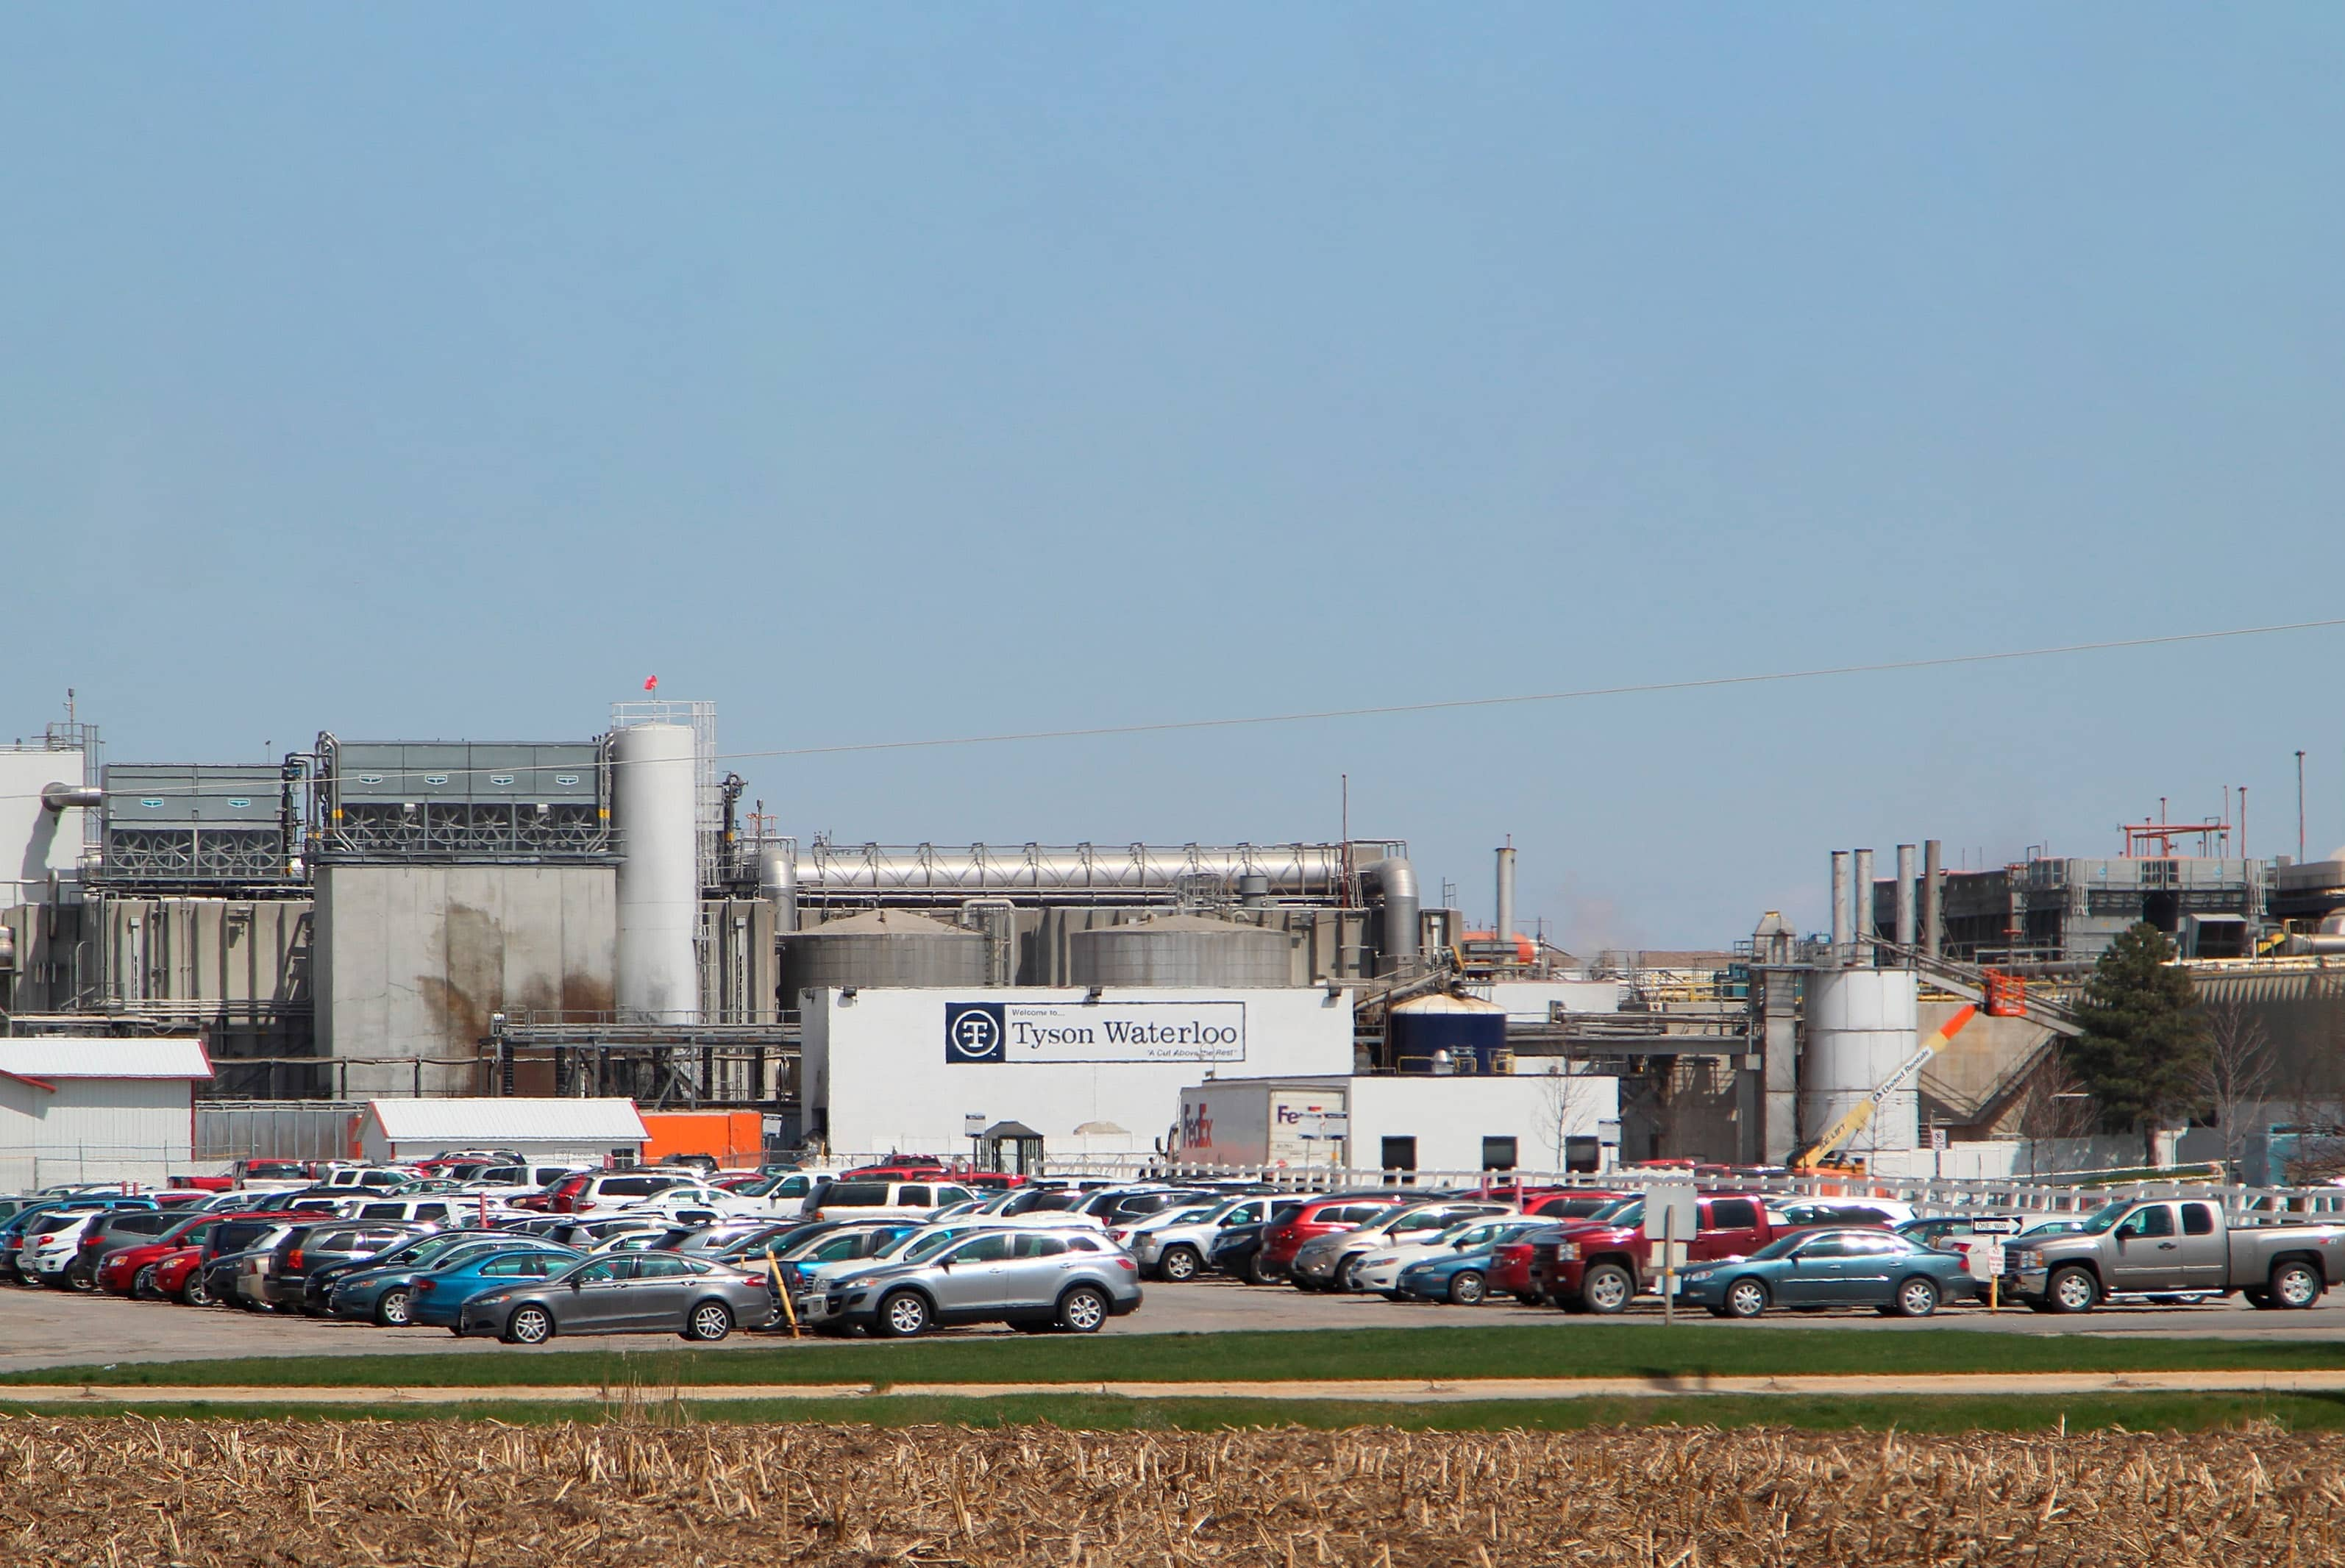 TYSON FOODS IDLES LARGEST PORK PLANT AS VIRUS SLAMS INDUSTRY